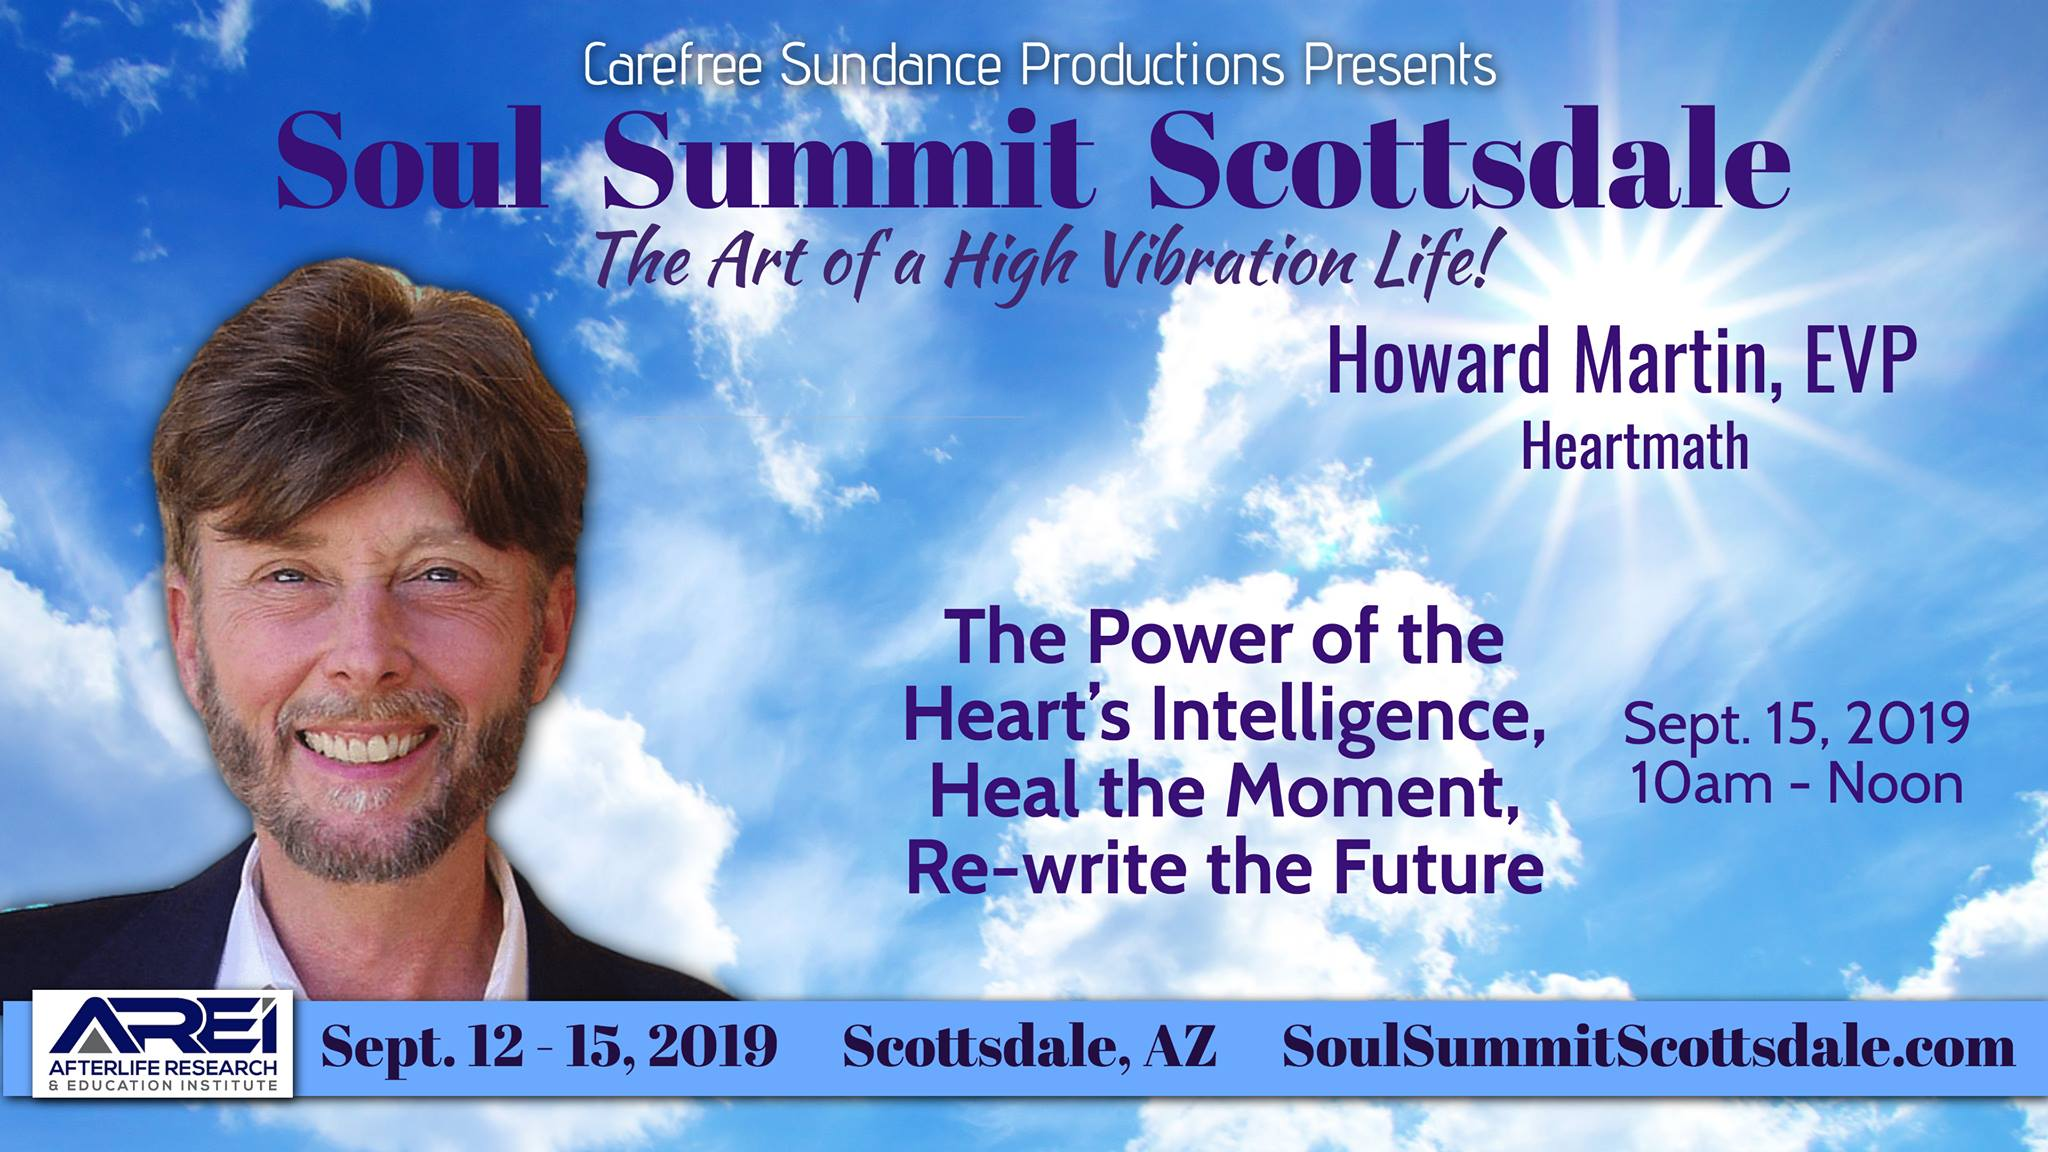 Howard Martin Presents: The Power of the Heart's Intelligence, Heal the Moment, Re-write the Future